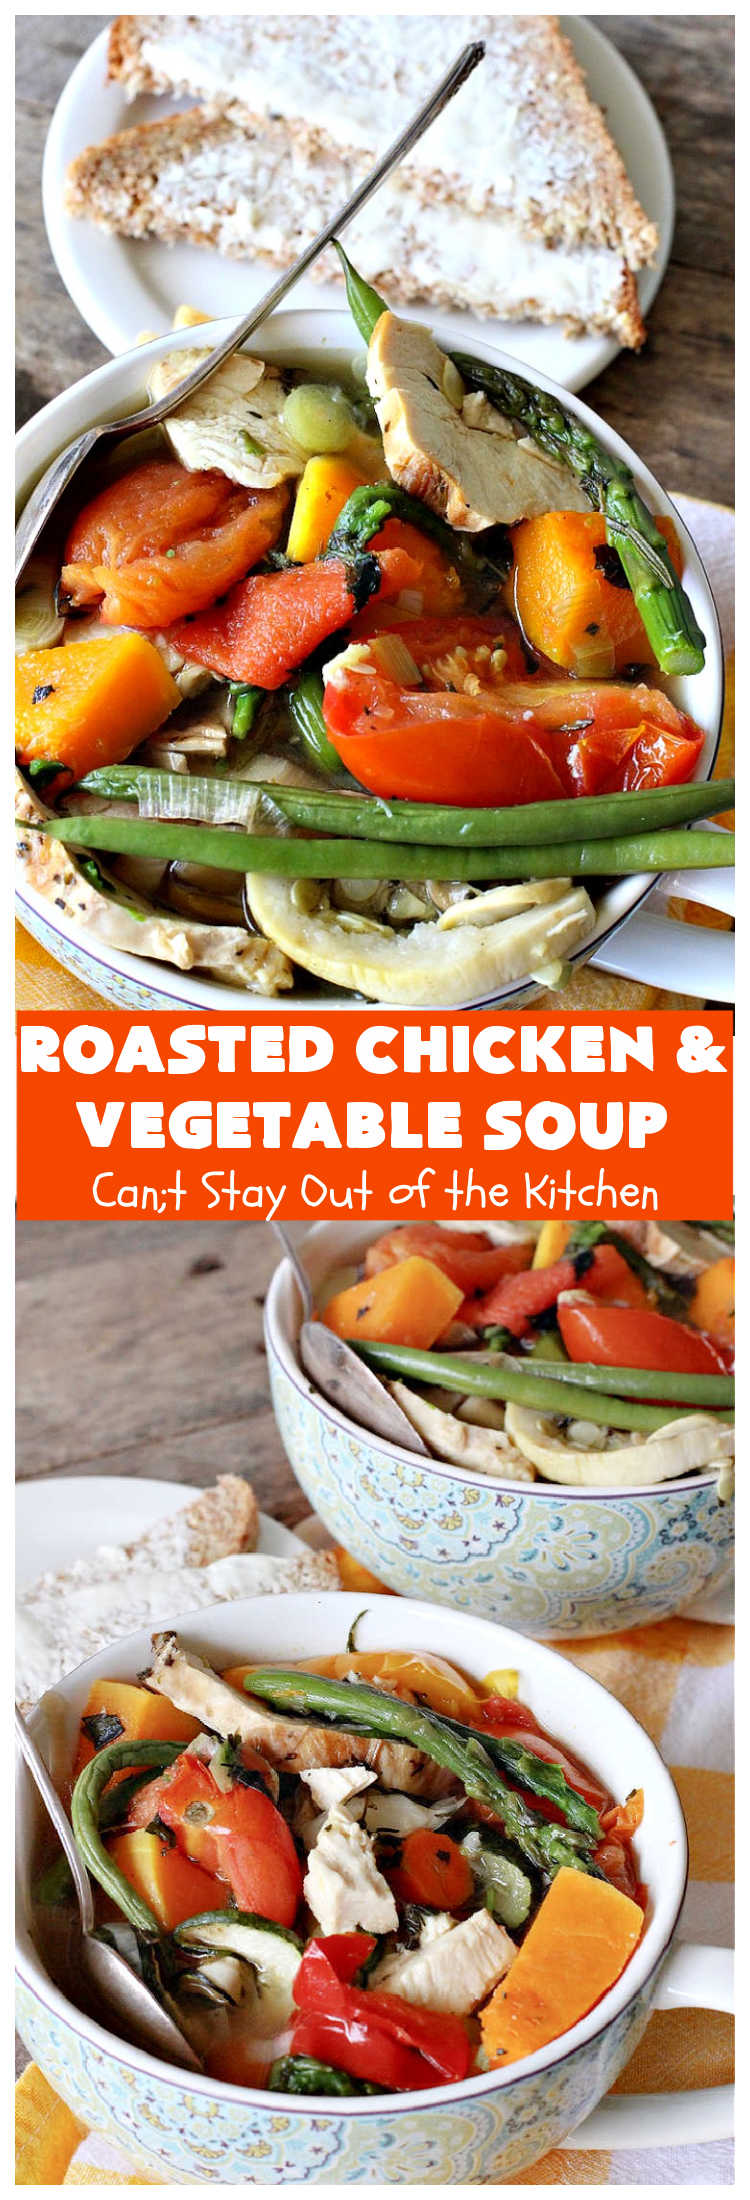 Roasted Chicken and Vegetable Soup | Can't Stay Out of the Kitchen | this superb #soup #recipe is made with grilled #chicken & lots of fresh #veggies seasoned with fresh #basil, #oregano, #thyme & #rosemary. It's #healthy, #LowCalorie, #GlutenFree & #CleanEating. #HealthySoupRecipe #GlutenFreeSouprRecipe #LowCalorieSoupRecipe #RoastedChickenAndVegetableSoup #tomatoes #broccoli #asparagus #carrots #zucchini #YellowSquash